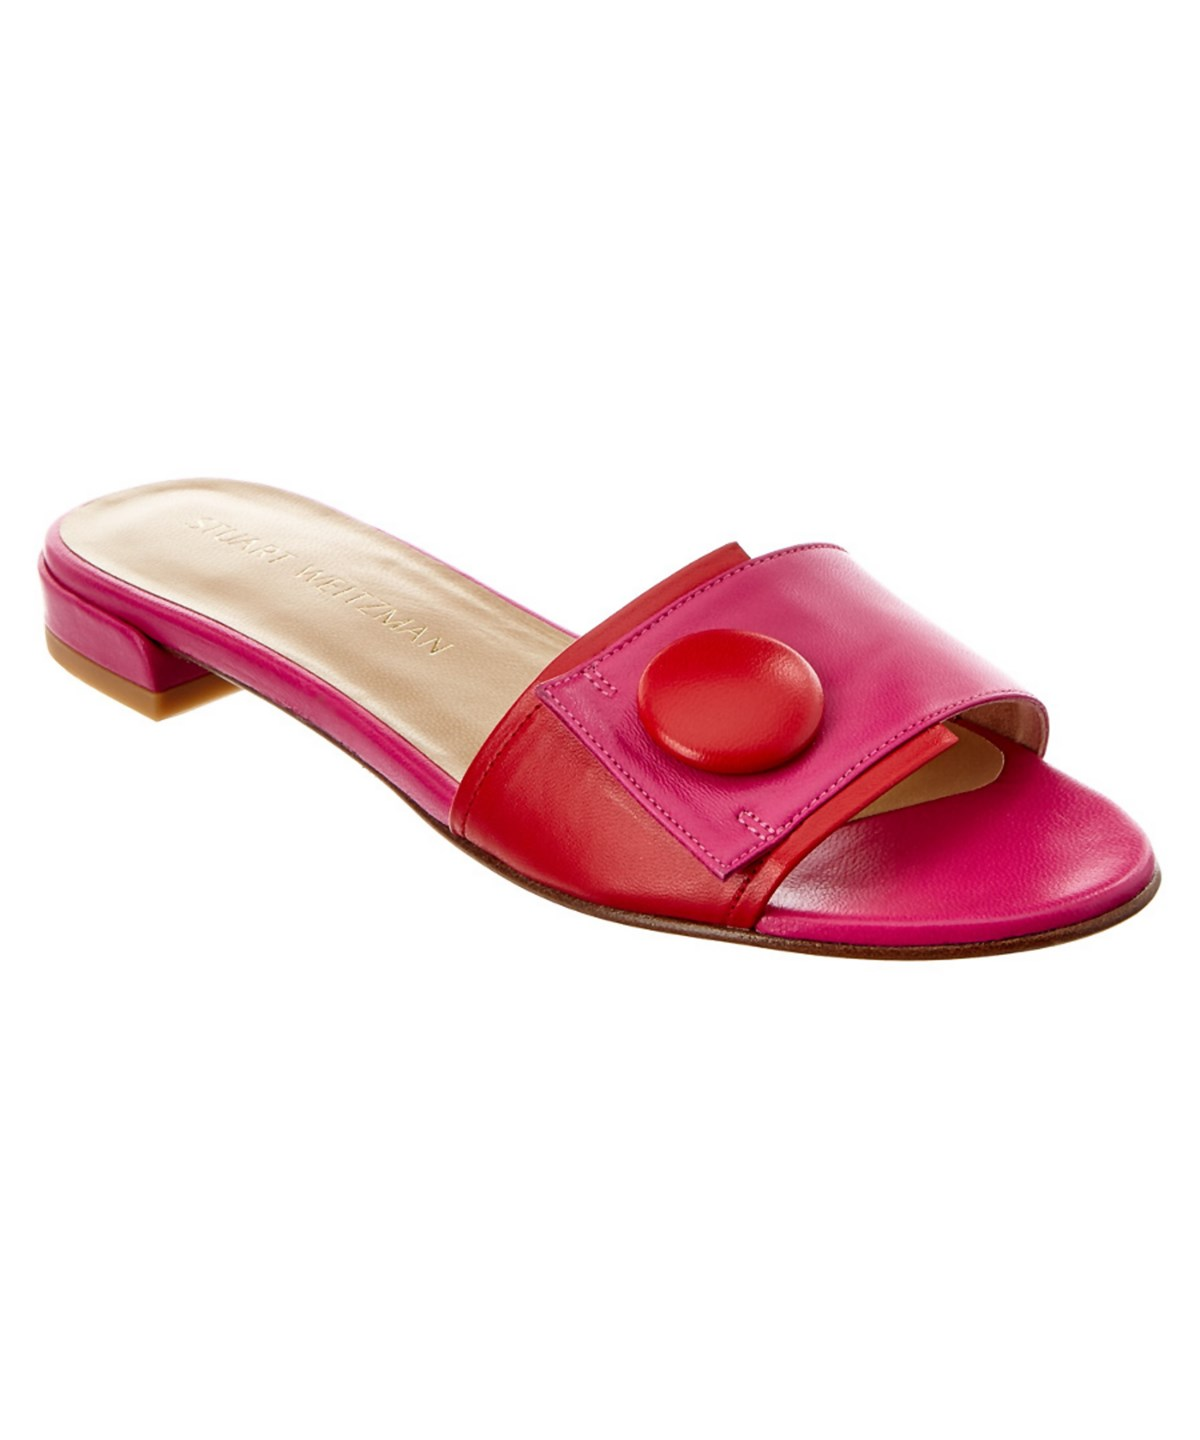 Stuart Weitzman Buttoni Leather Sandal In Pink